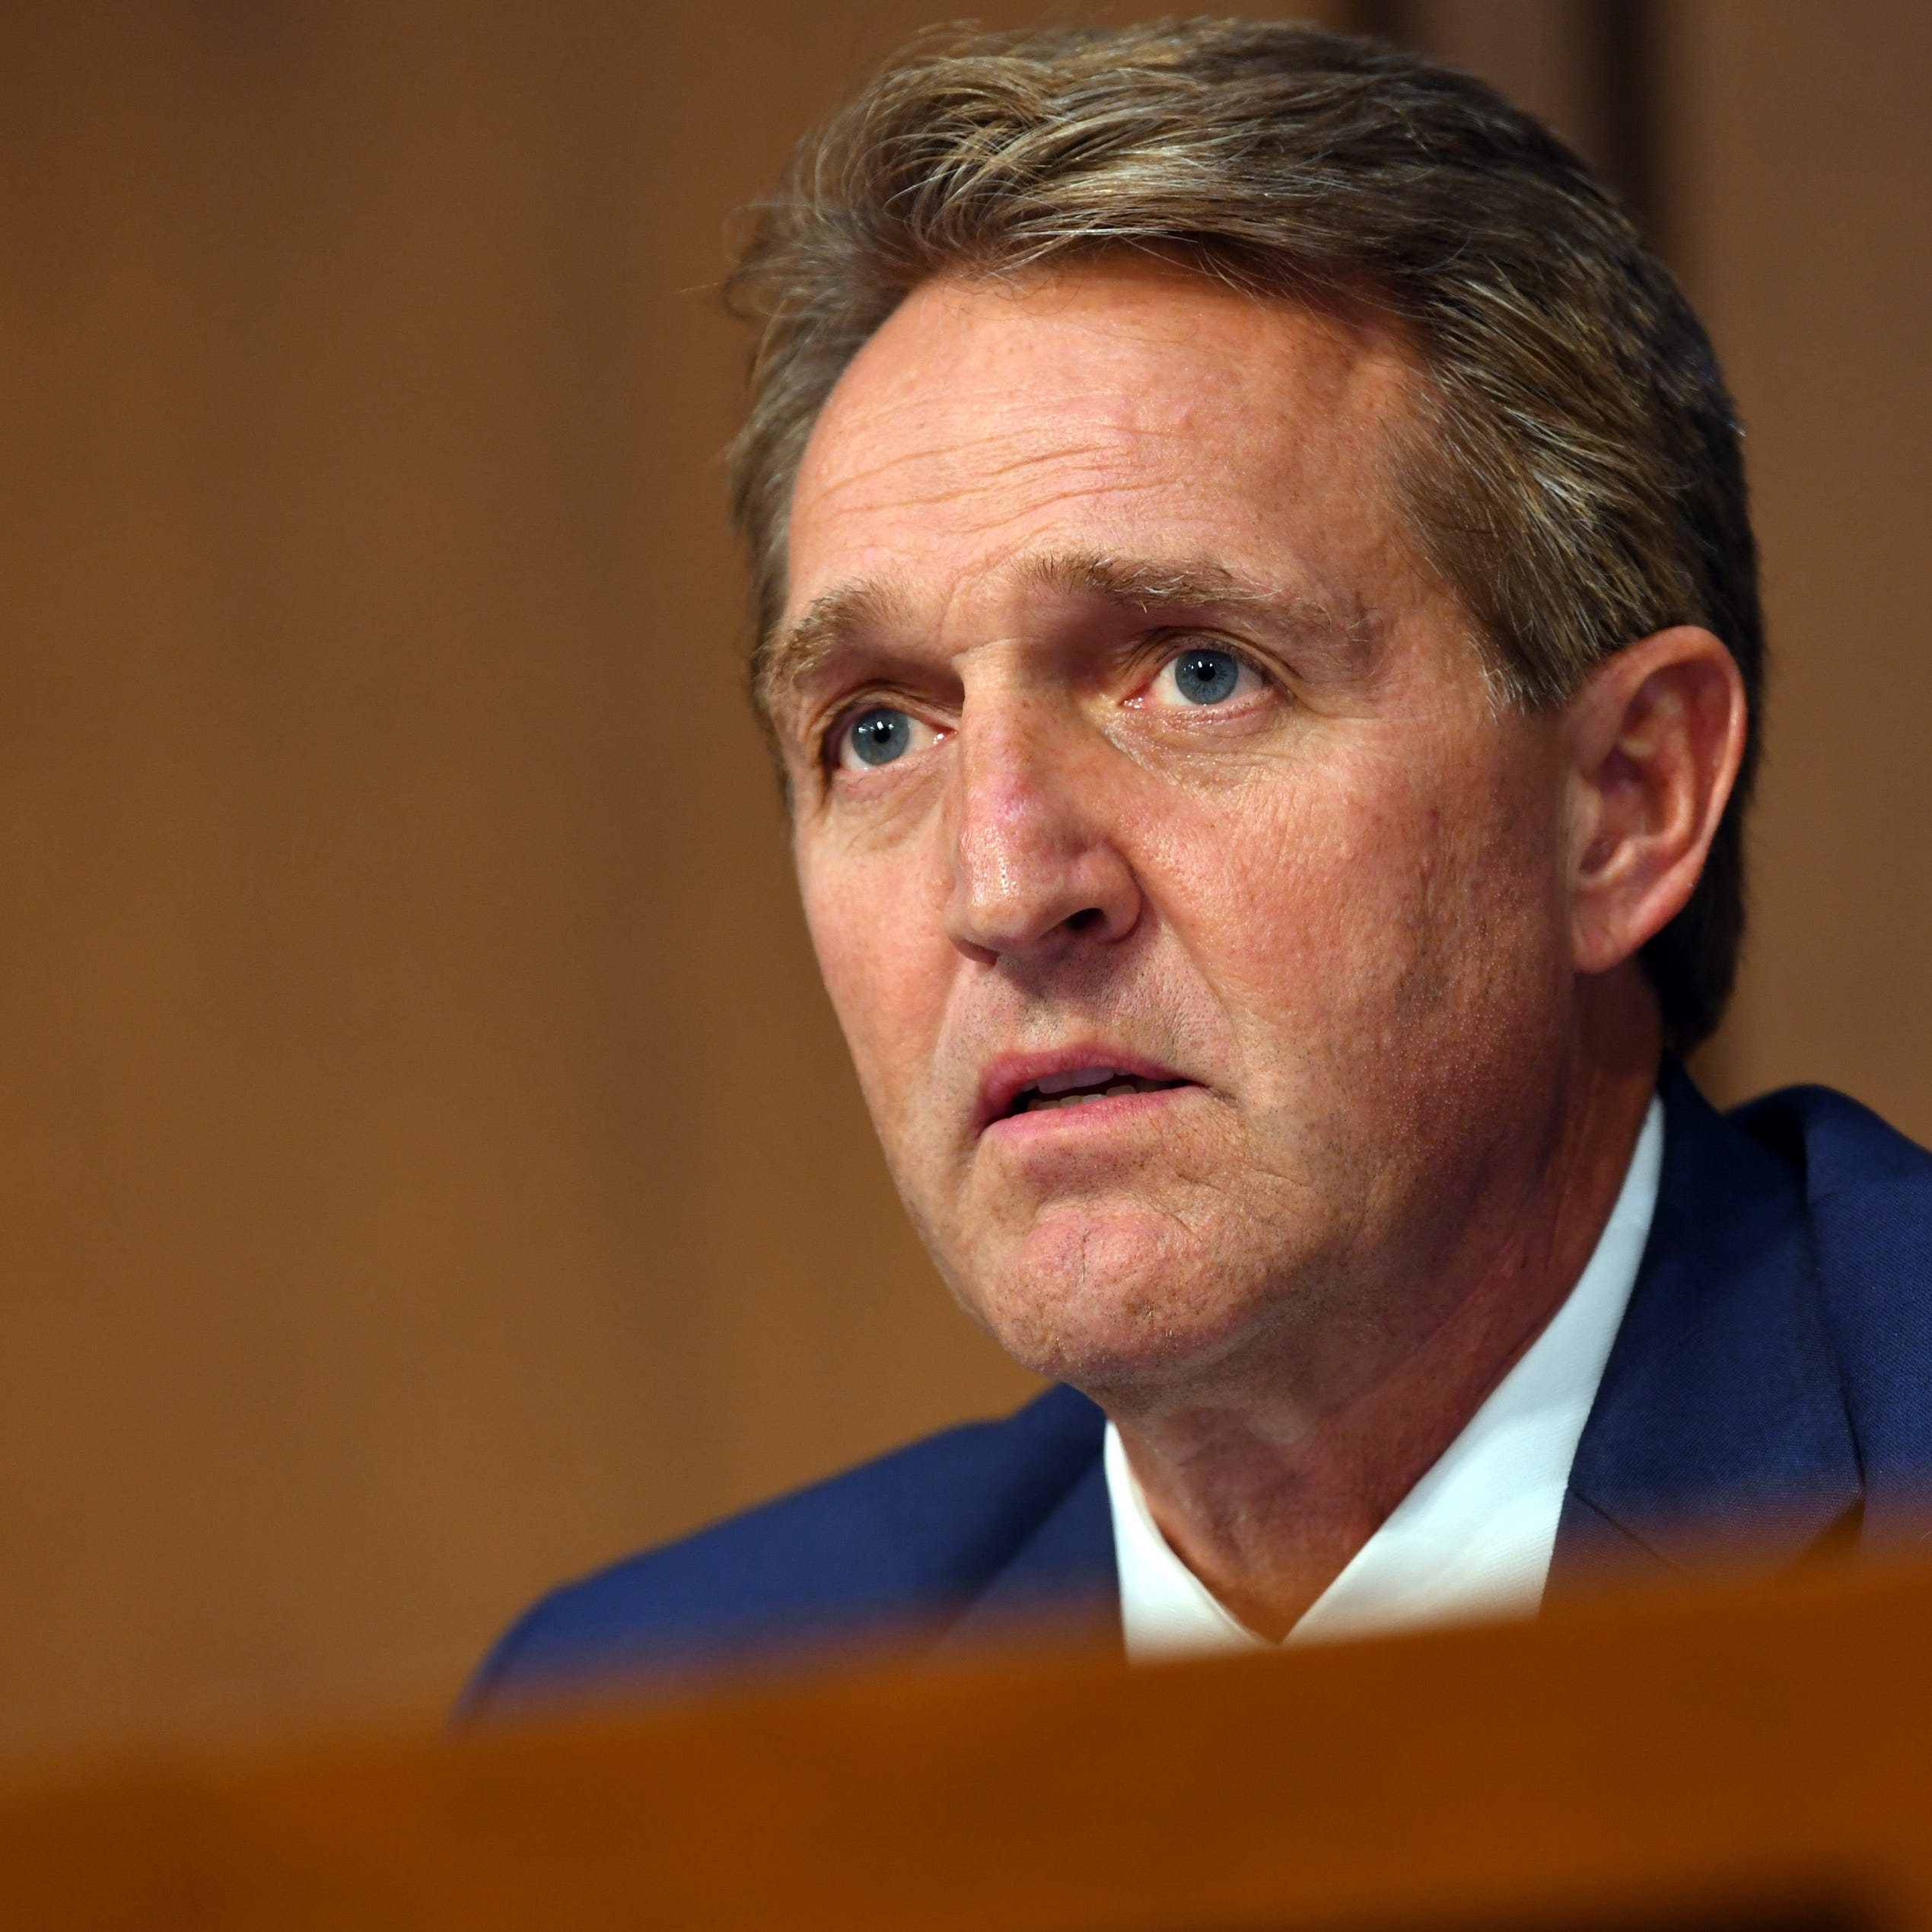 Sen. Jeff Flake, R-Ariz., listens during the hearing for Supreme Court Associate Justice Brett Kavanaugh in Washington on Sept. 4, 2018.